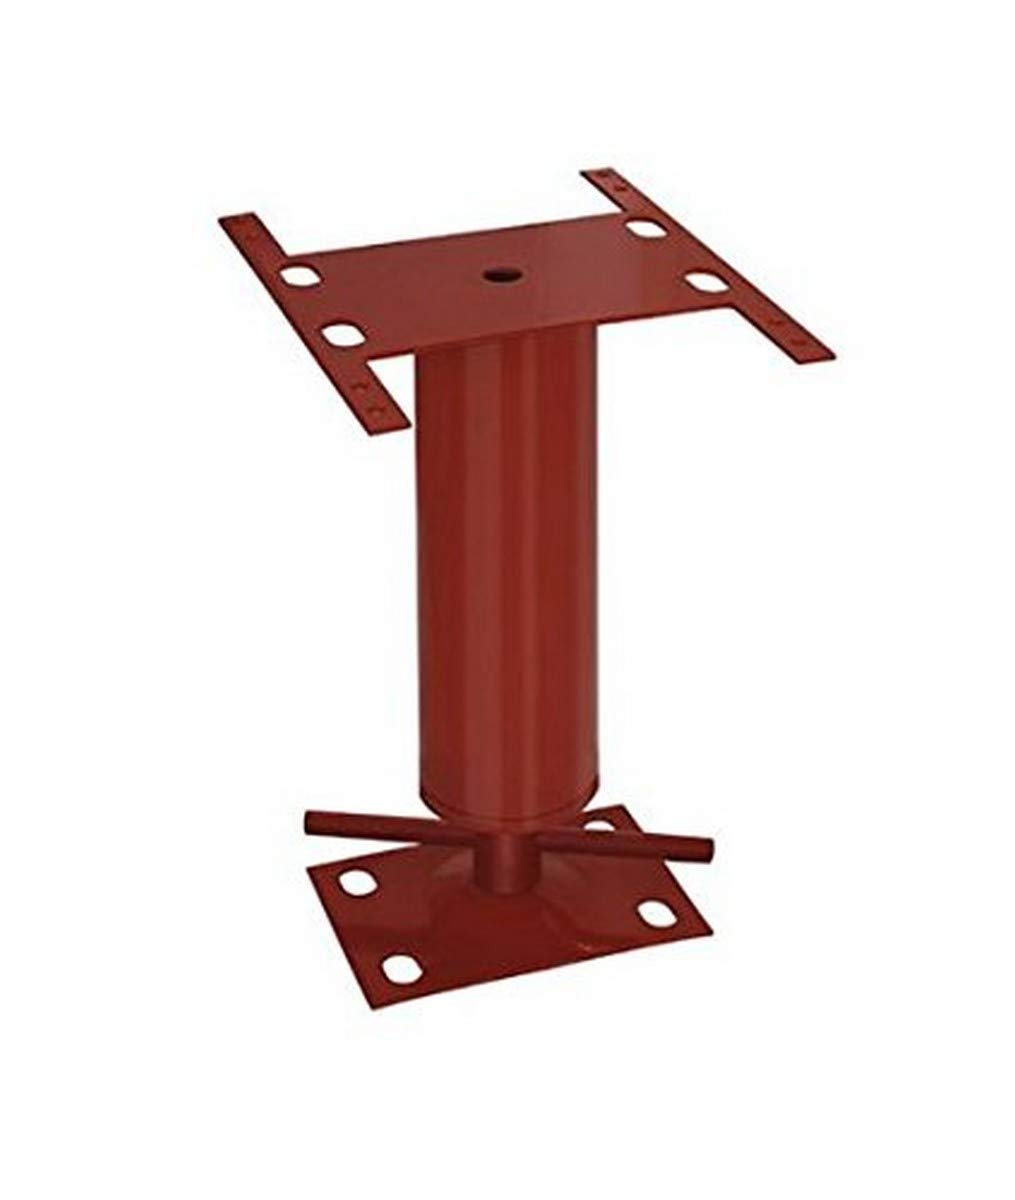 "Akron Products J Mobile Mobile Home Utility Jack, 12-16"", 12"" Length, 12"" Height, Red"